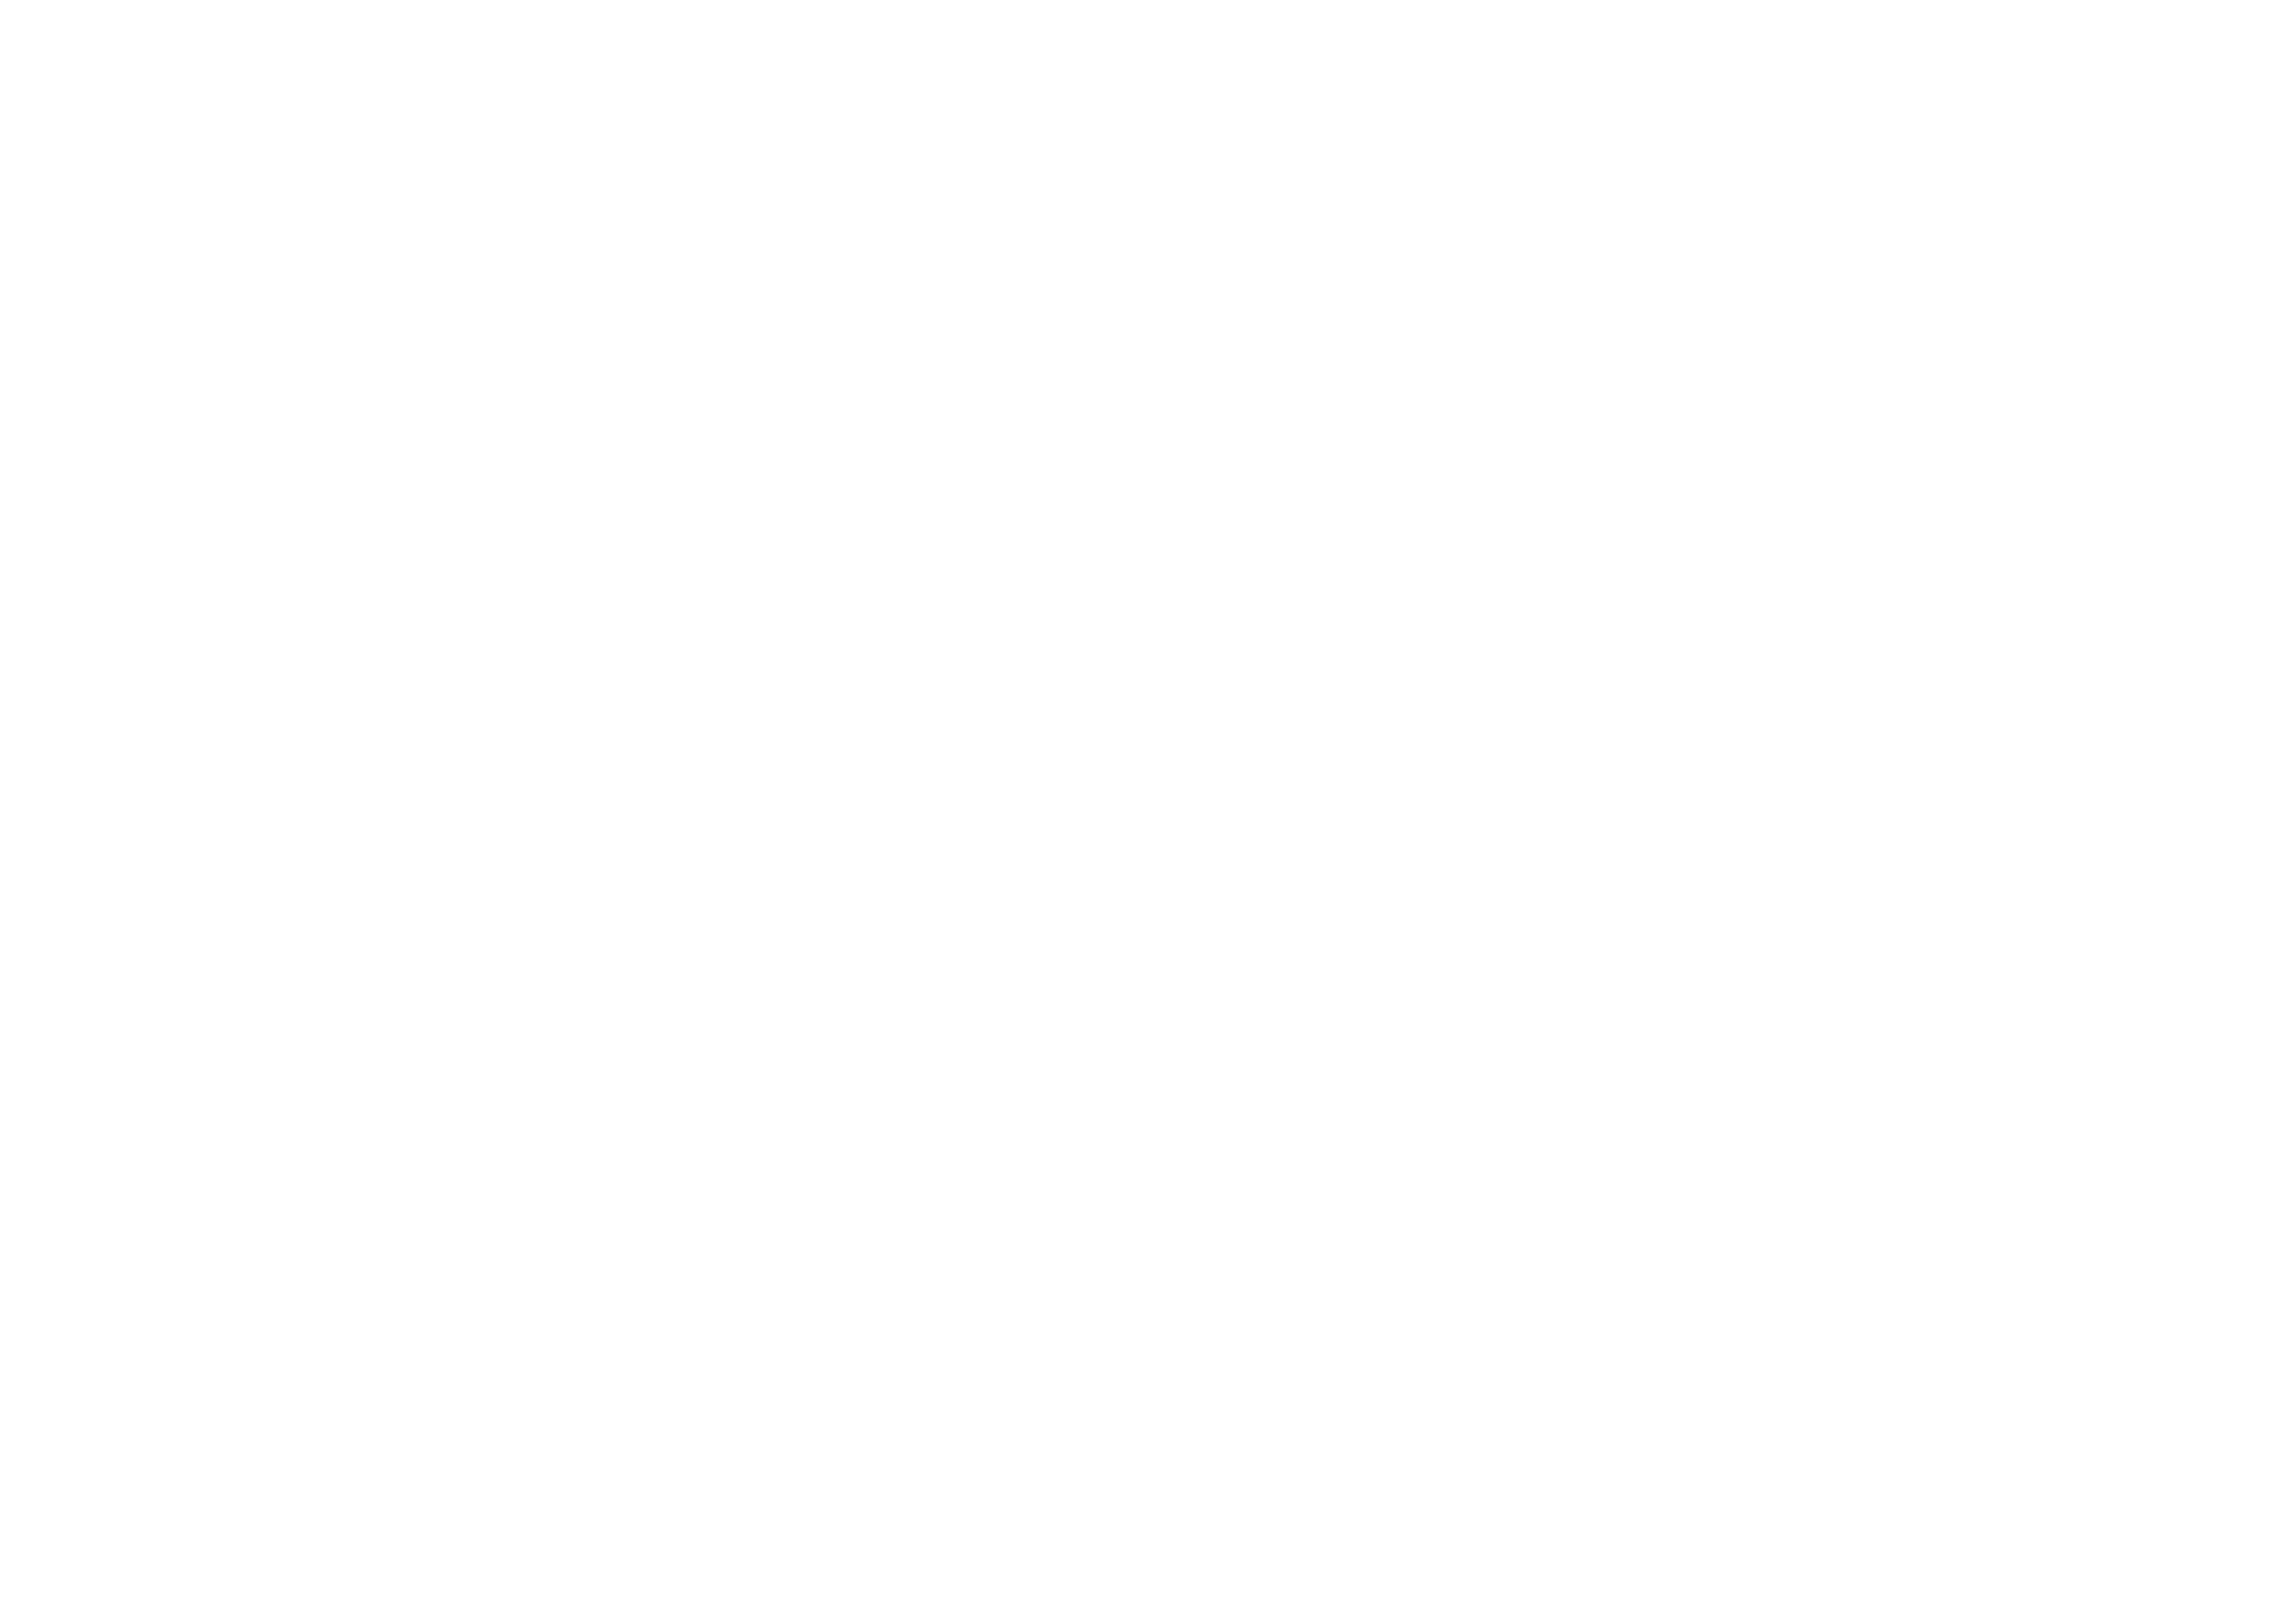 Performance ONE Physical Therapy in Nashville, TN